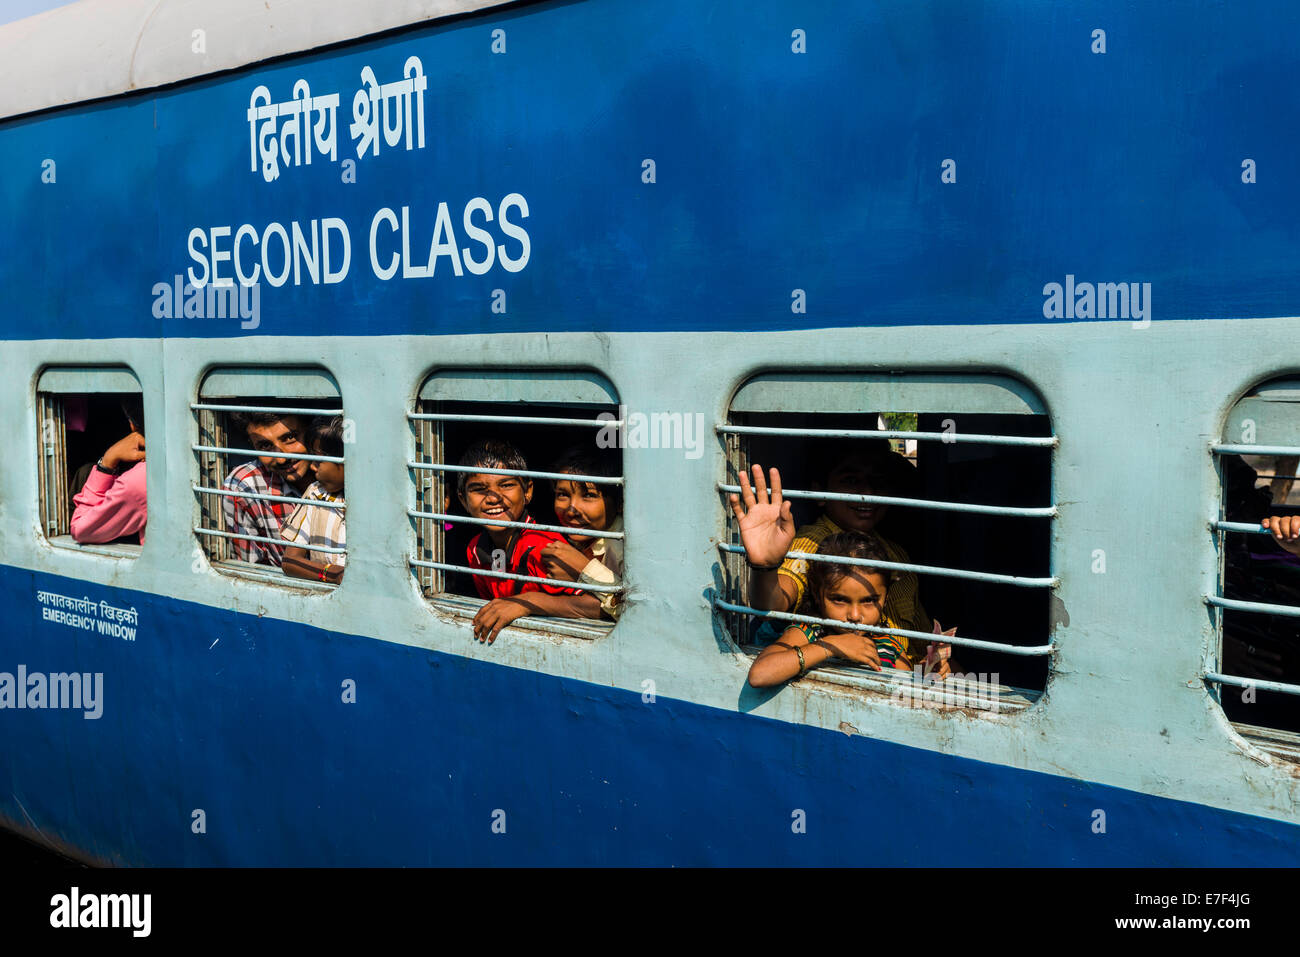 Second Class Indian Railways Train Coach Passengers Looking